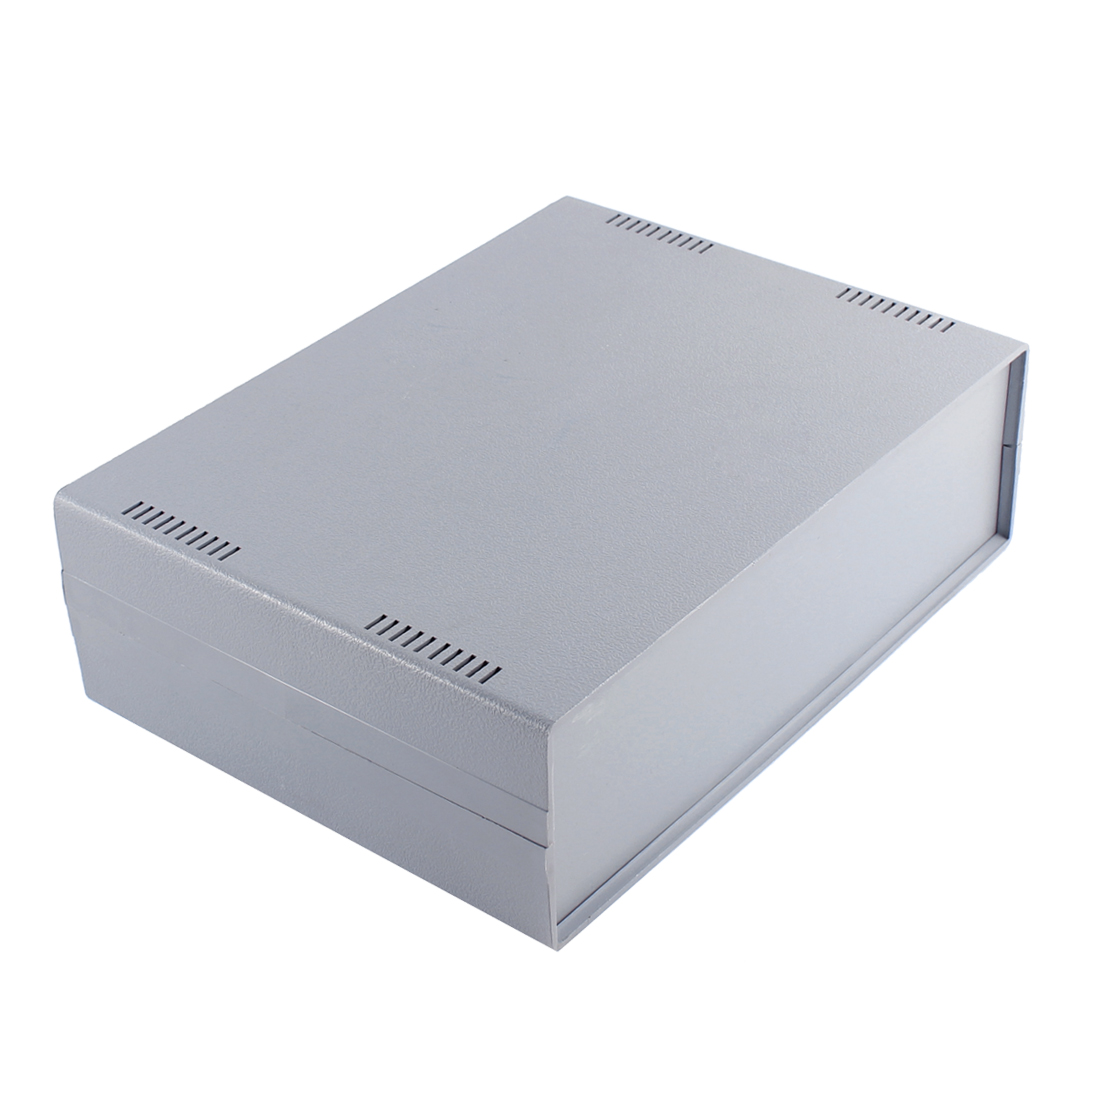 Plastic Project Box Enclosure Case Electronic DIY 250 x 190 x 80mm